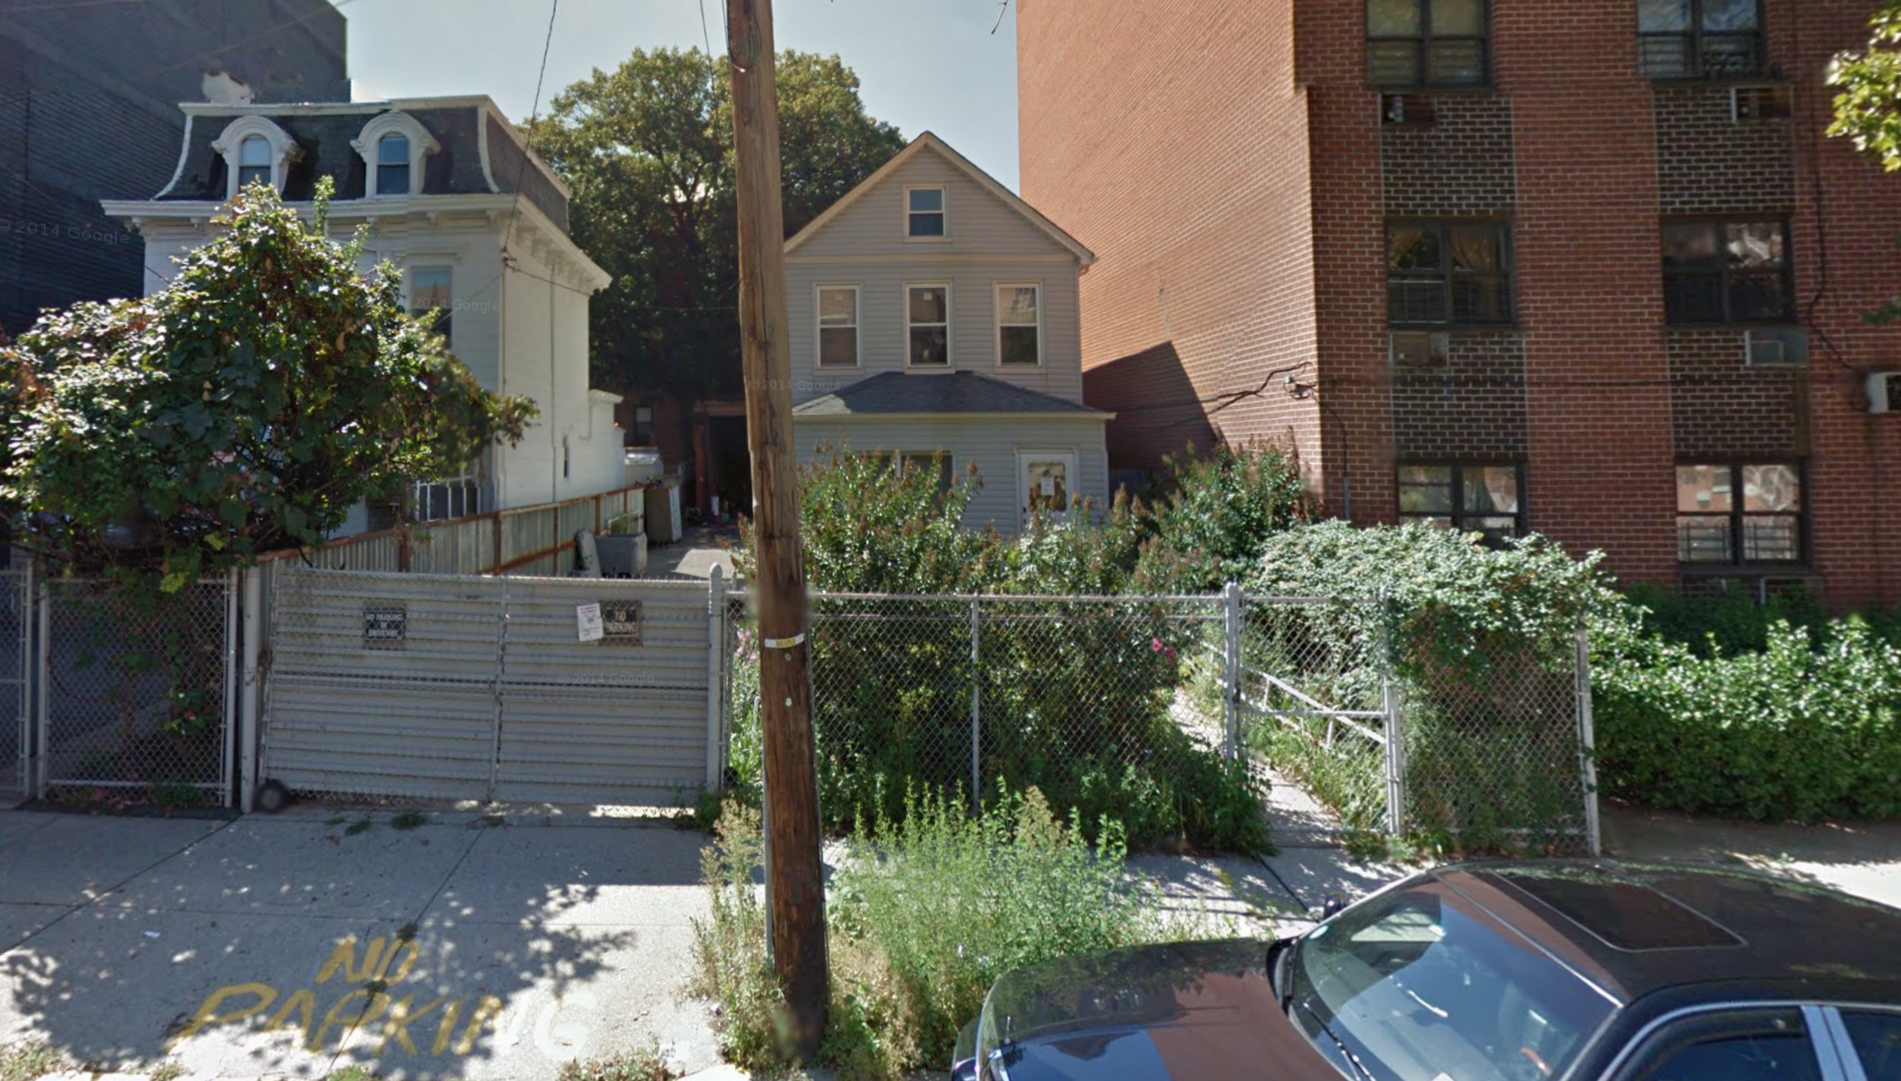 139-20 34th Avenue. Via Google Maps.